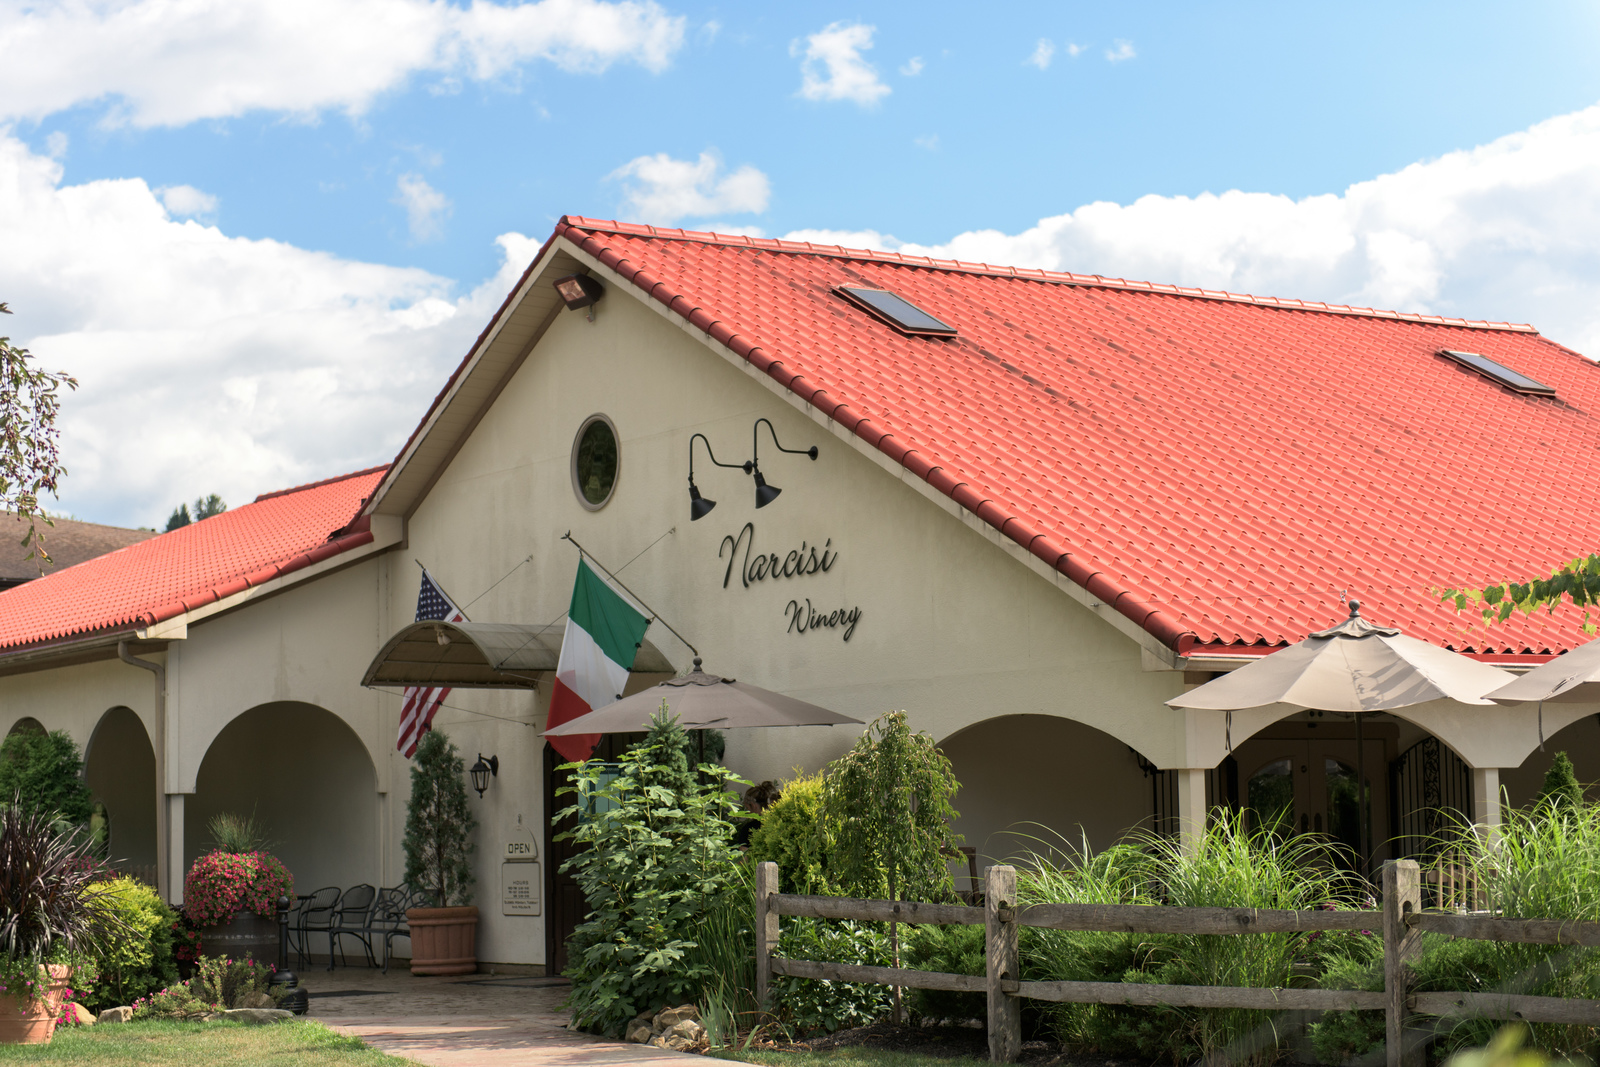 Narcisi Winery in Gibsonia offers wine tasting, dinner and special events a favorite hangout spot!